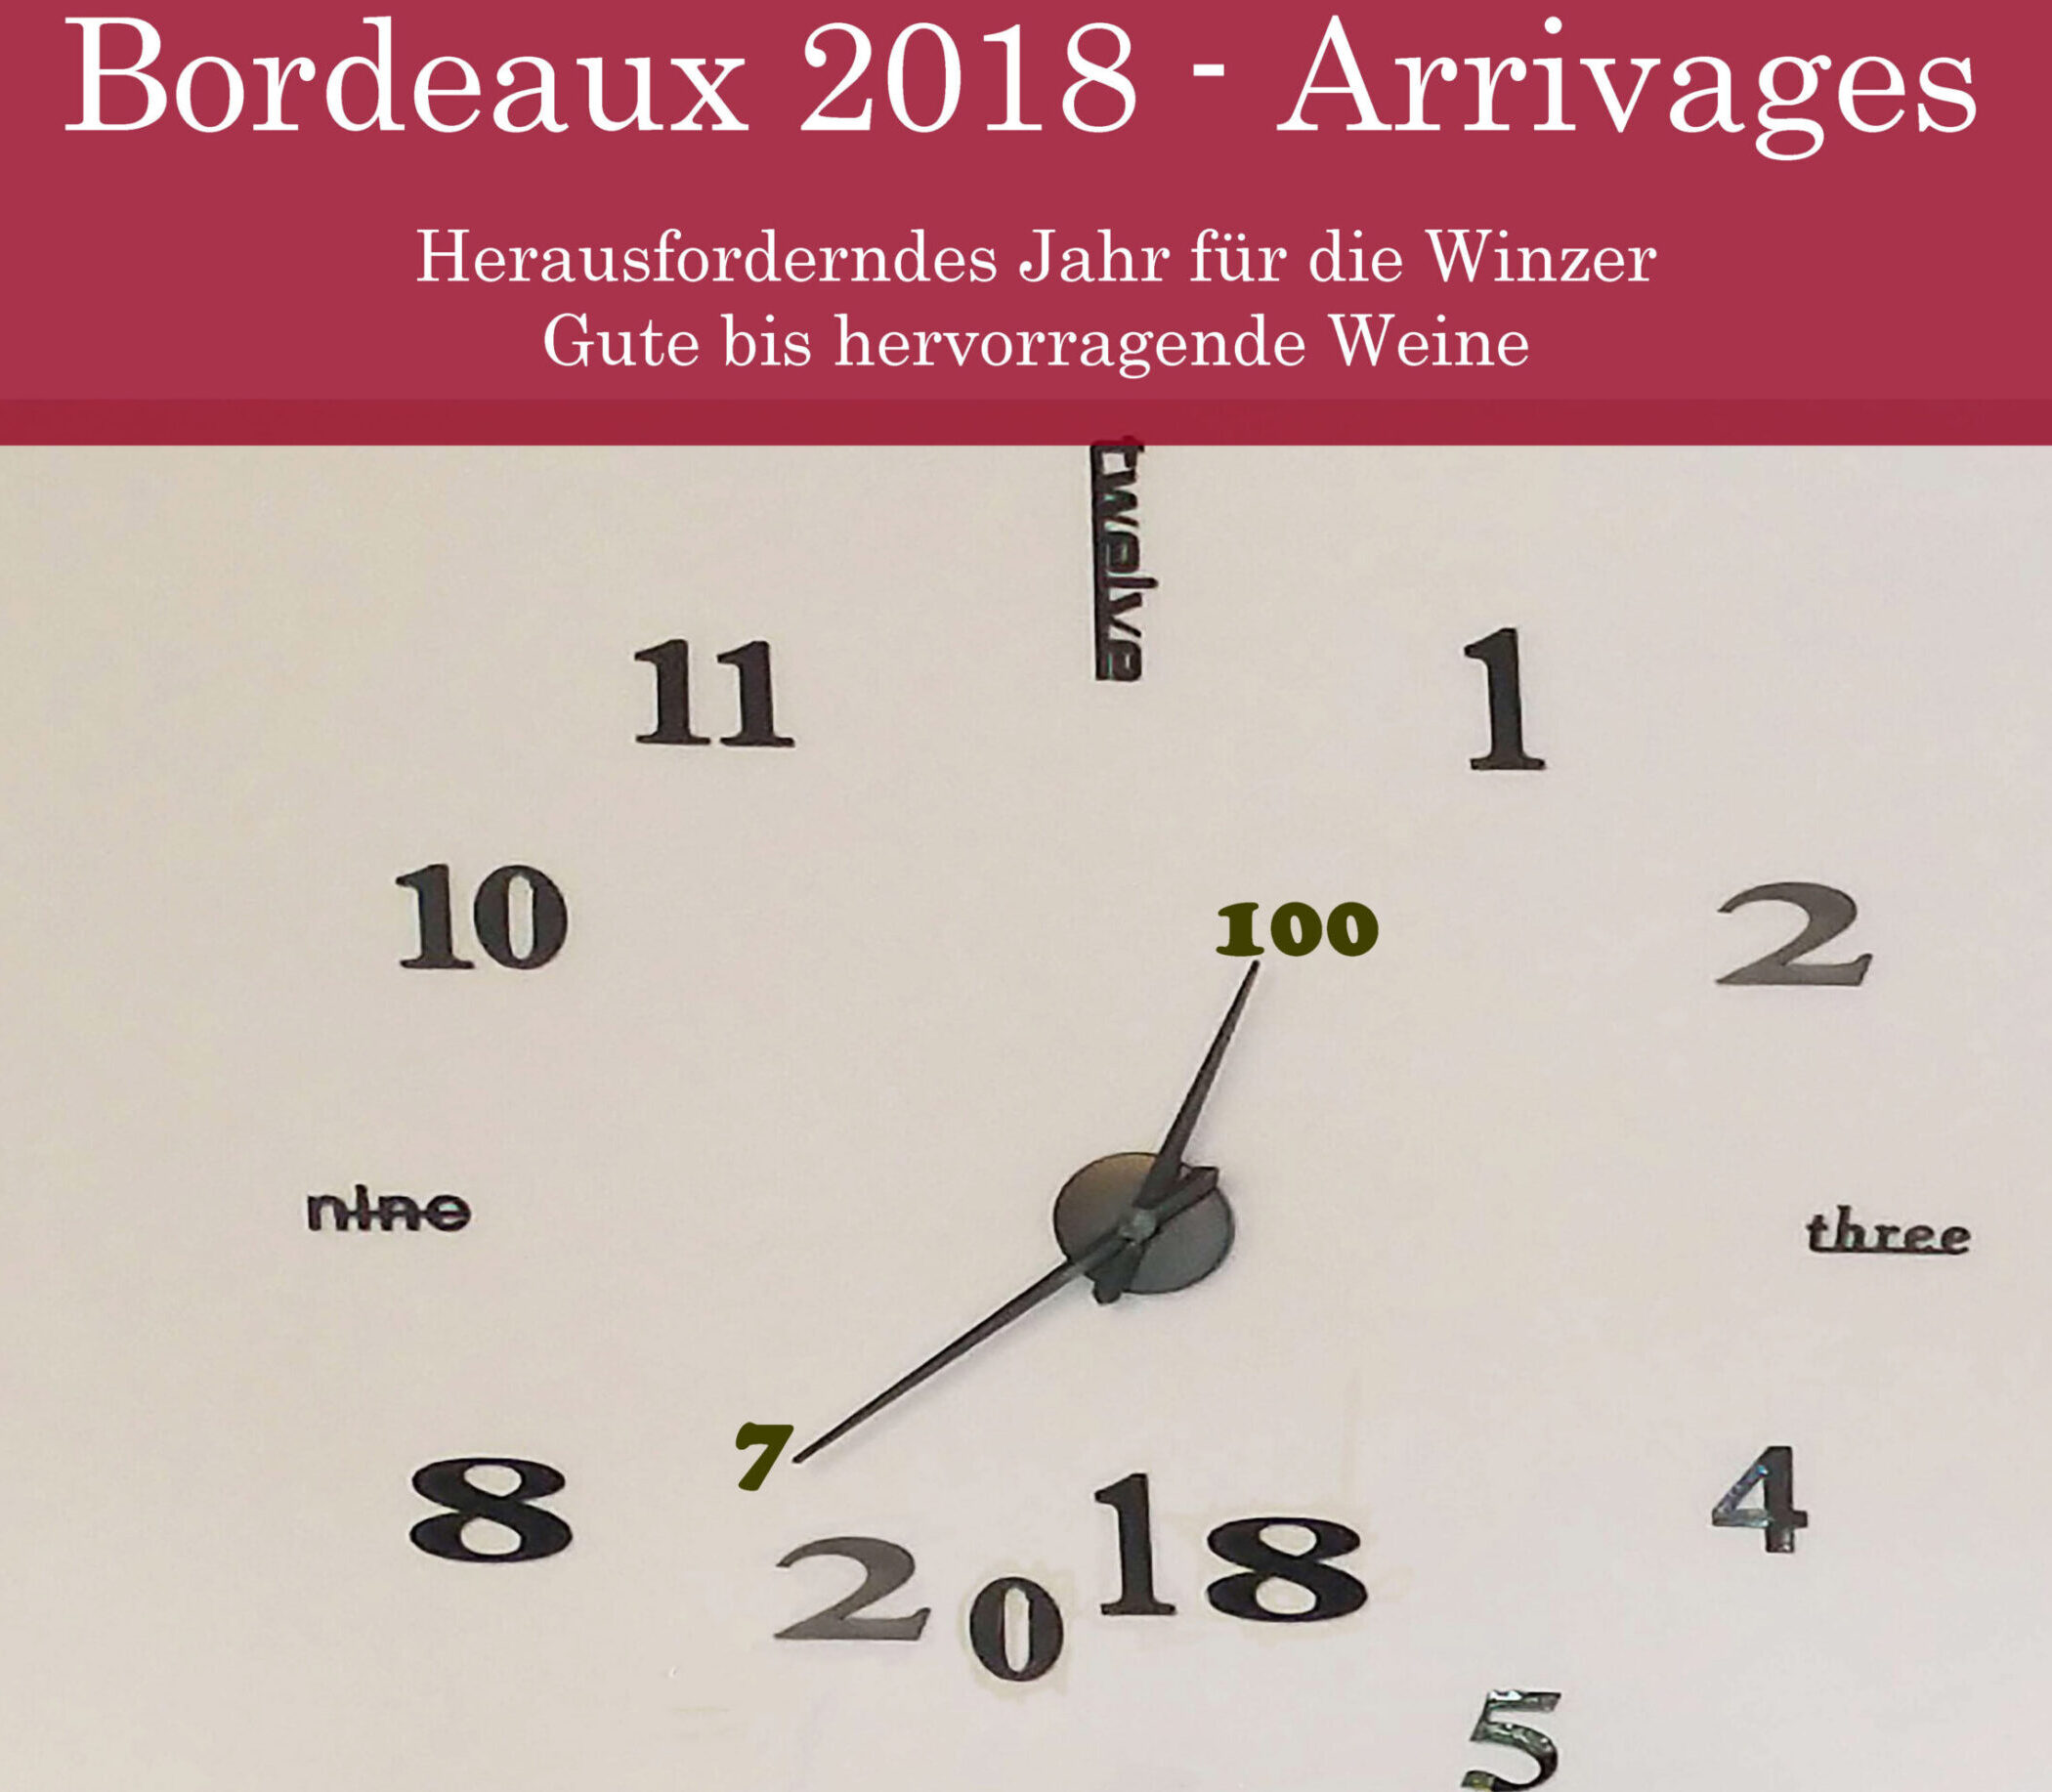 Bordeaux 2018 - Arrivage - Yves Beck